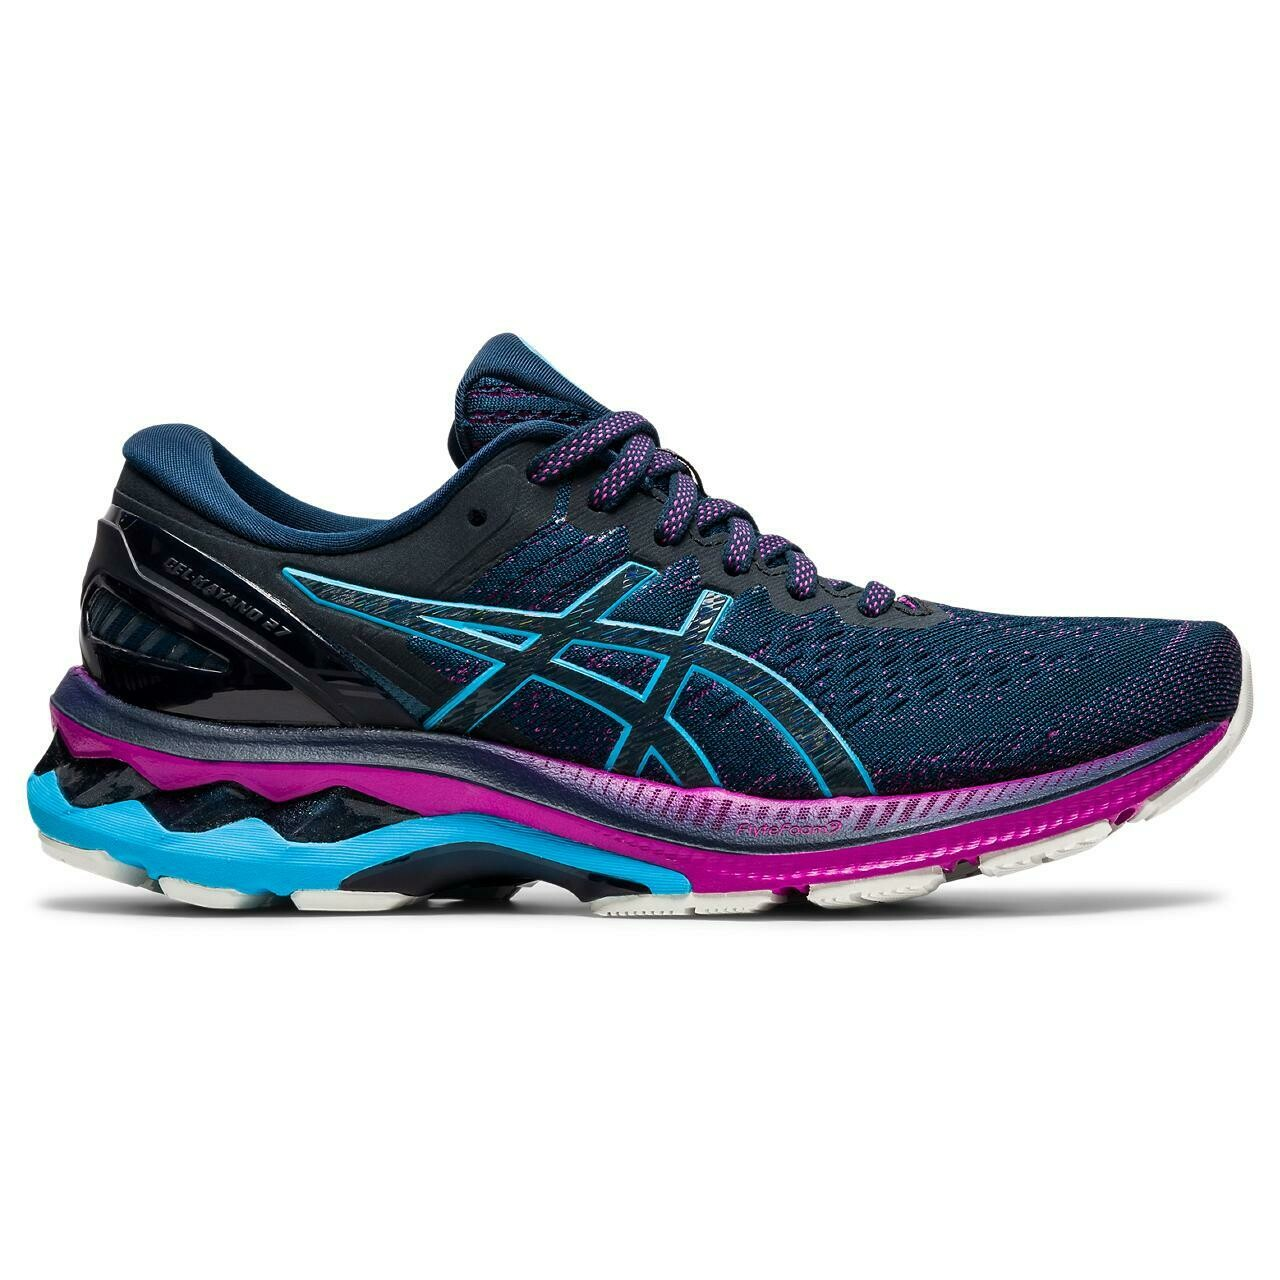 Asics Kayano 27 - support